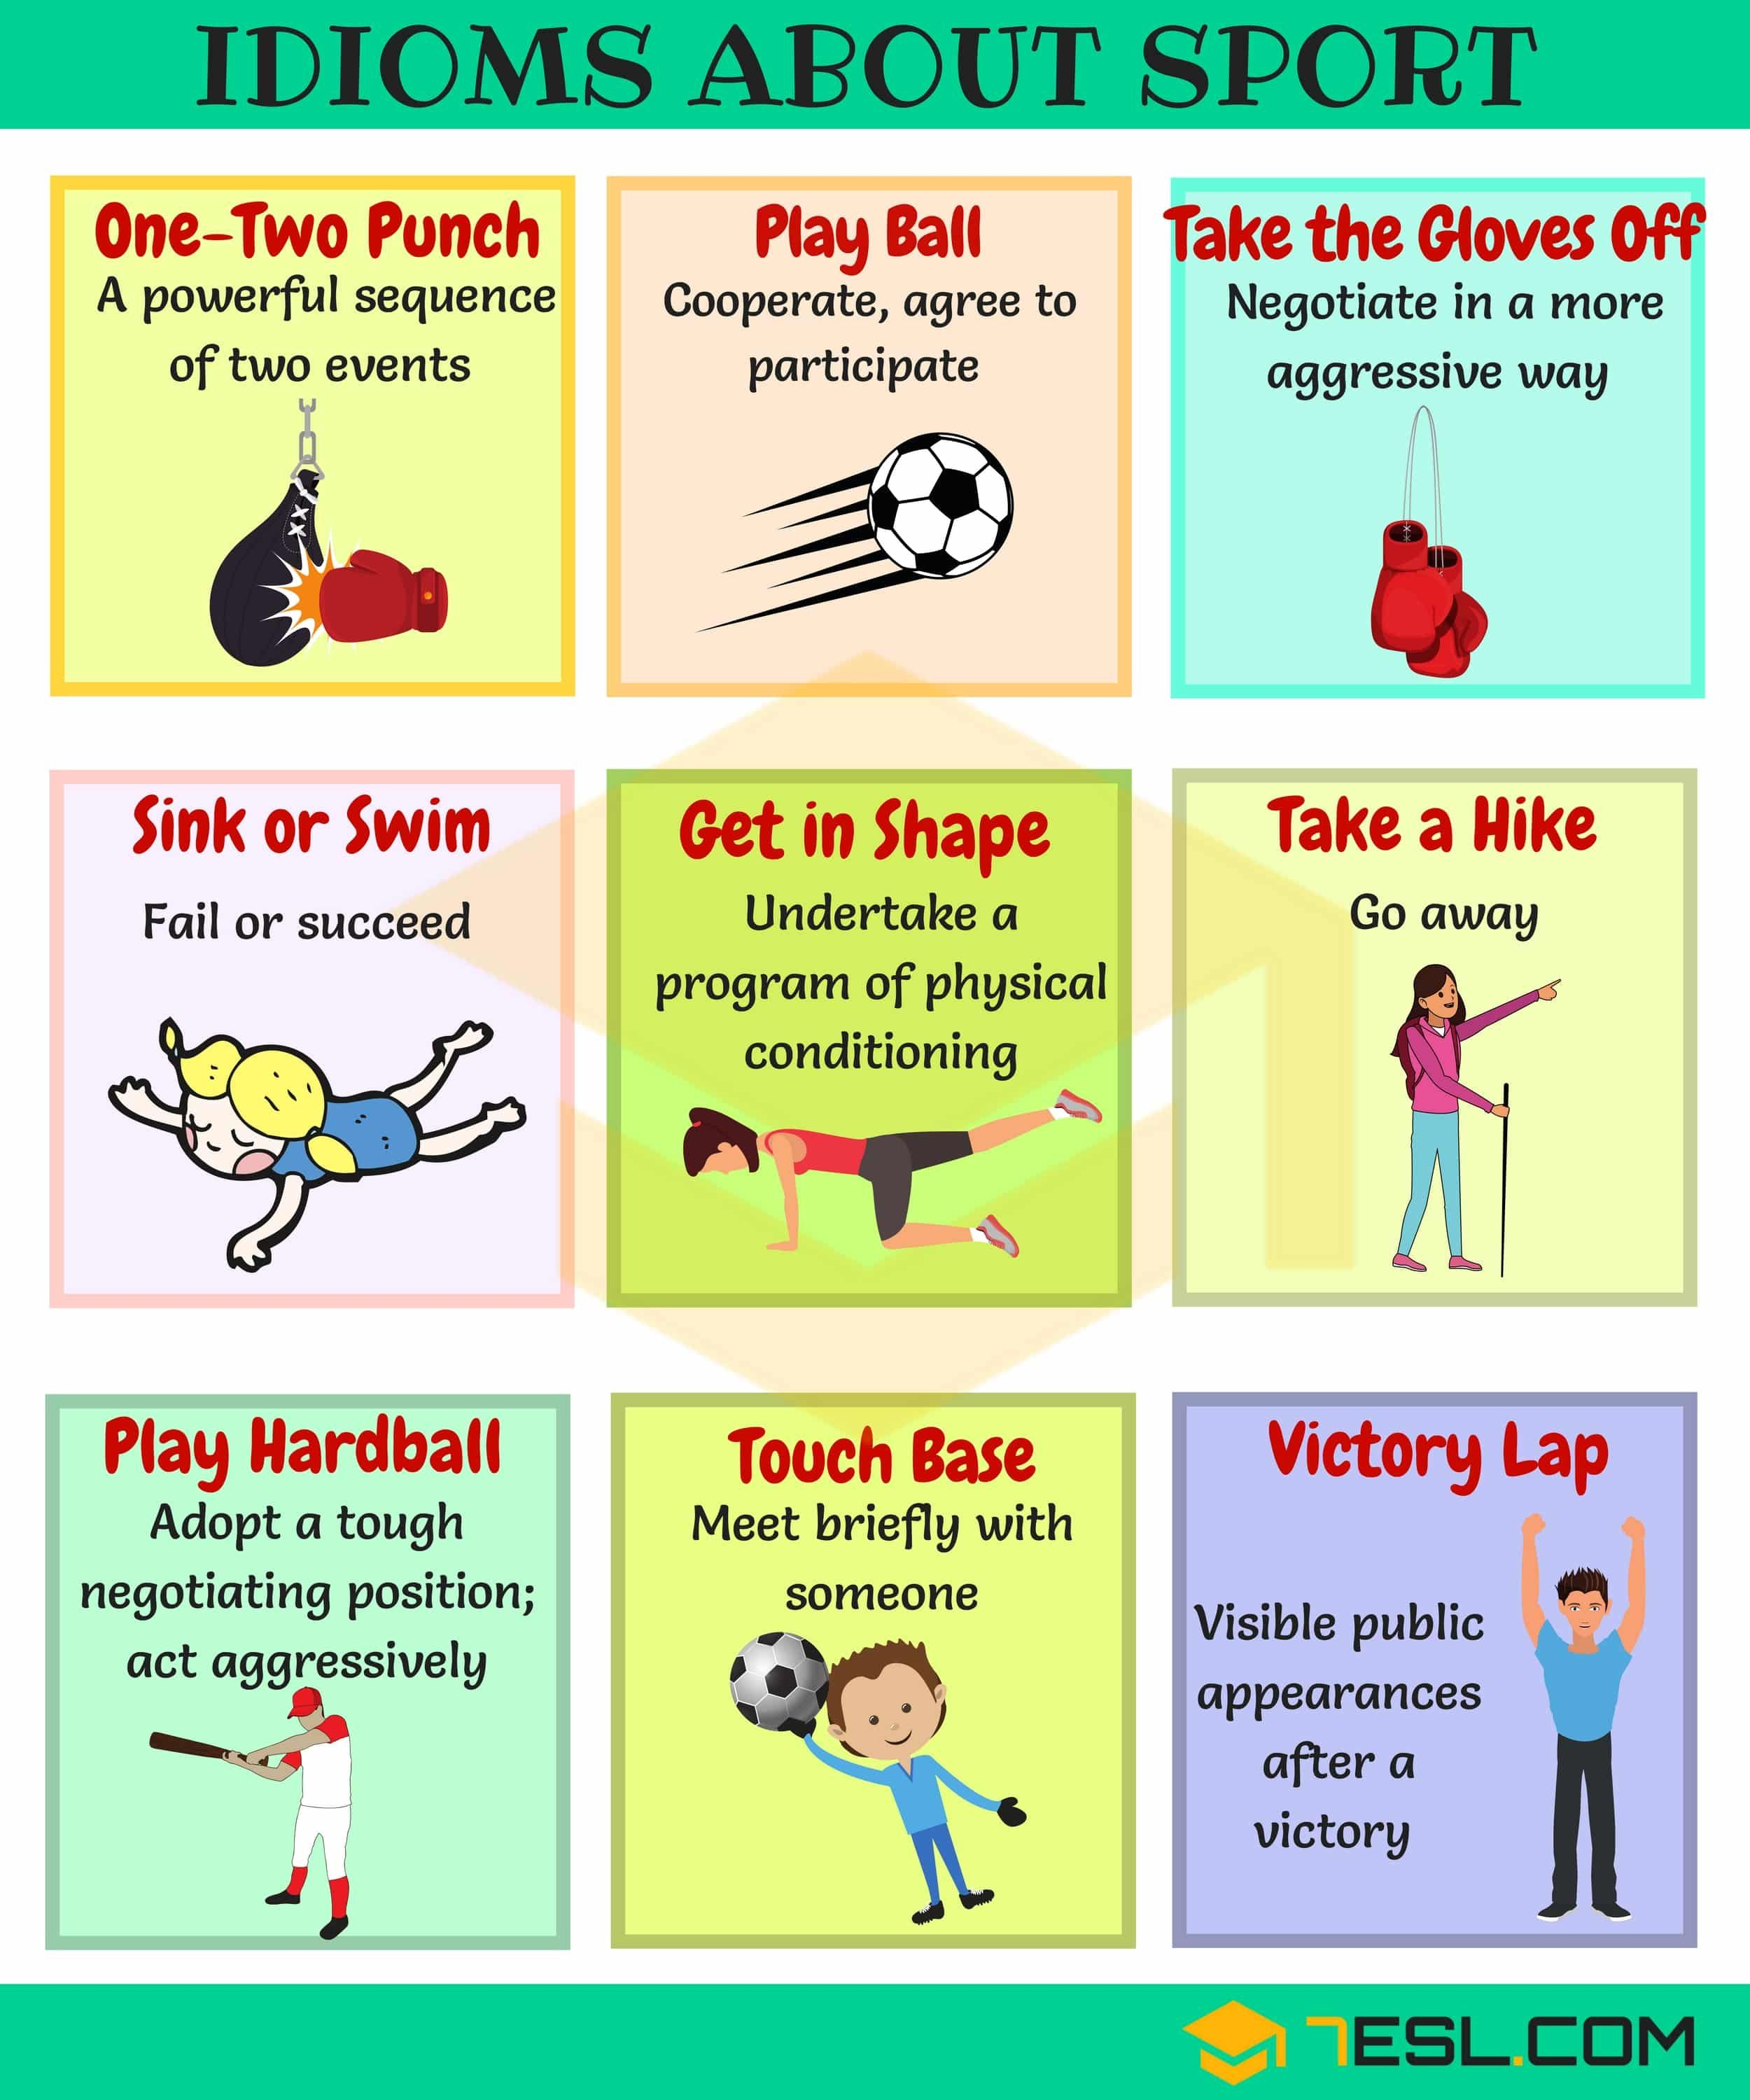 Sports Idioms 45 Useful Sport Idioms Amp Phrases With